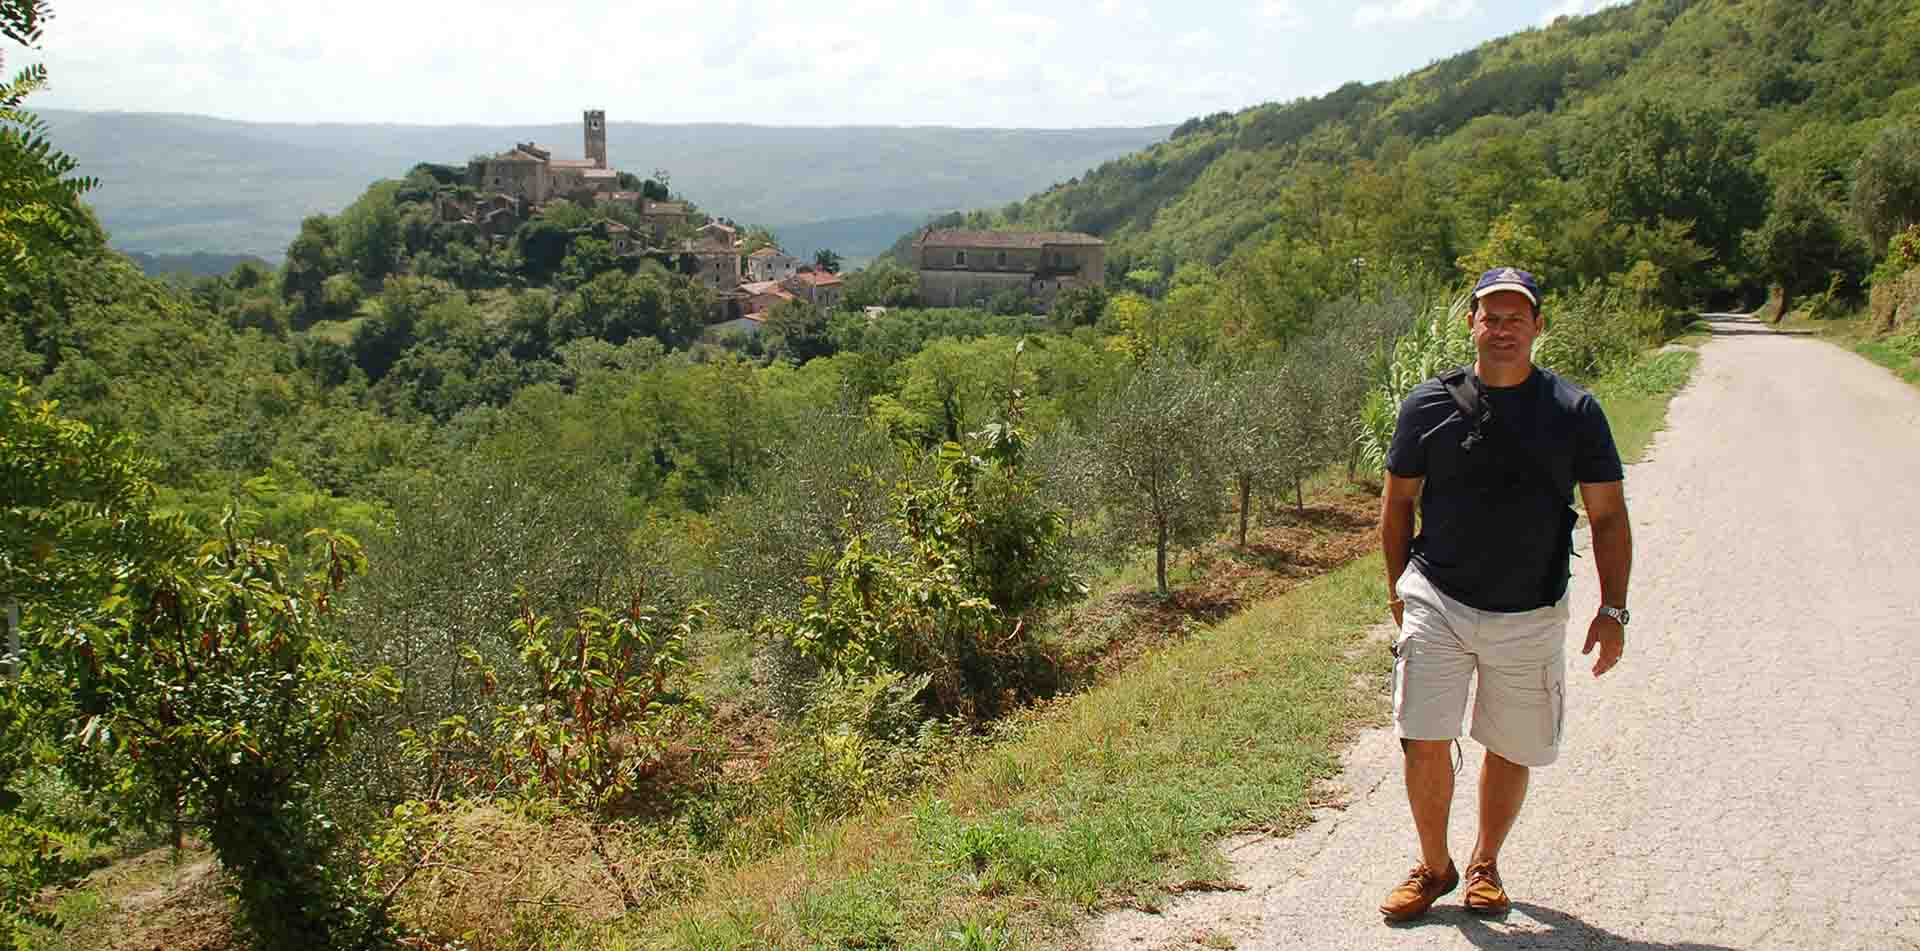 Europe Croatia Istria man walking on paved road old historic hiltop town lush landscape - luxury vacation destinations